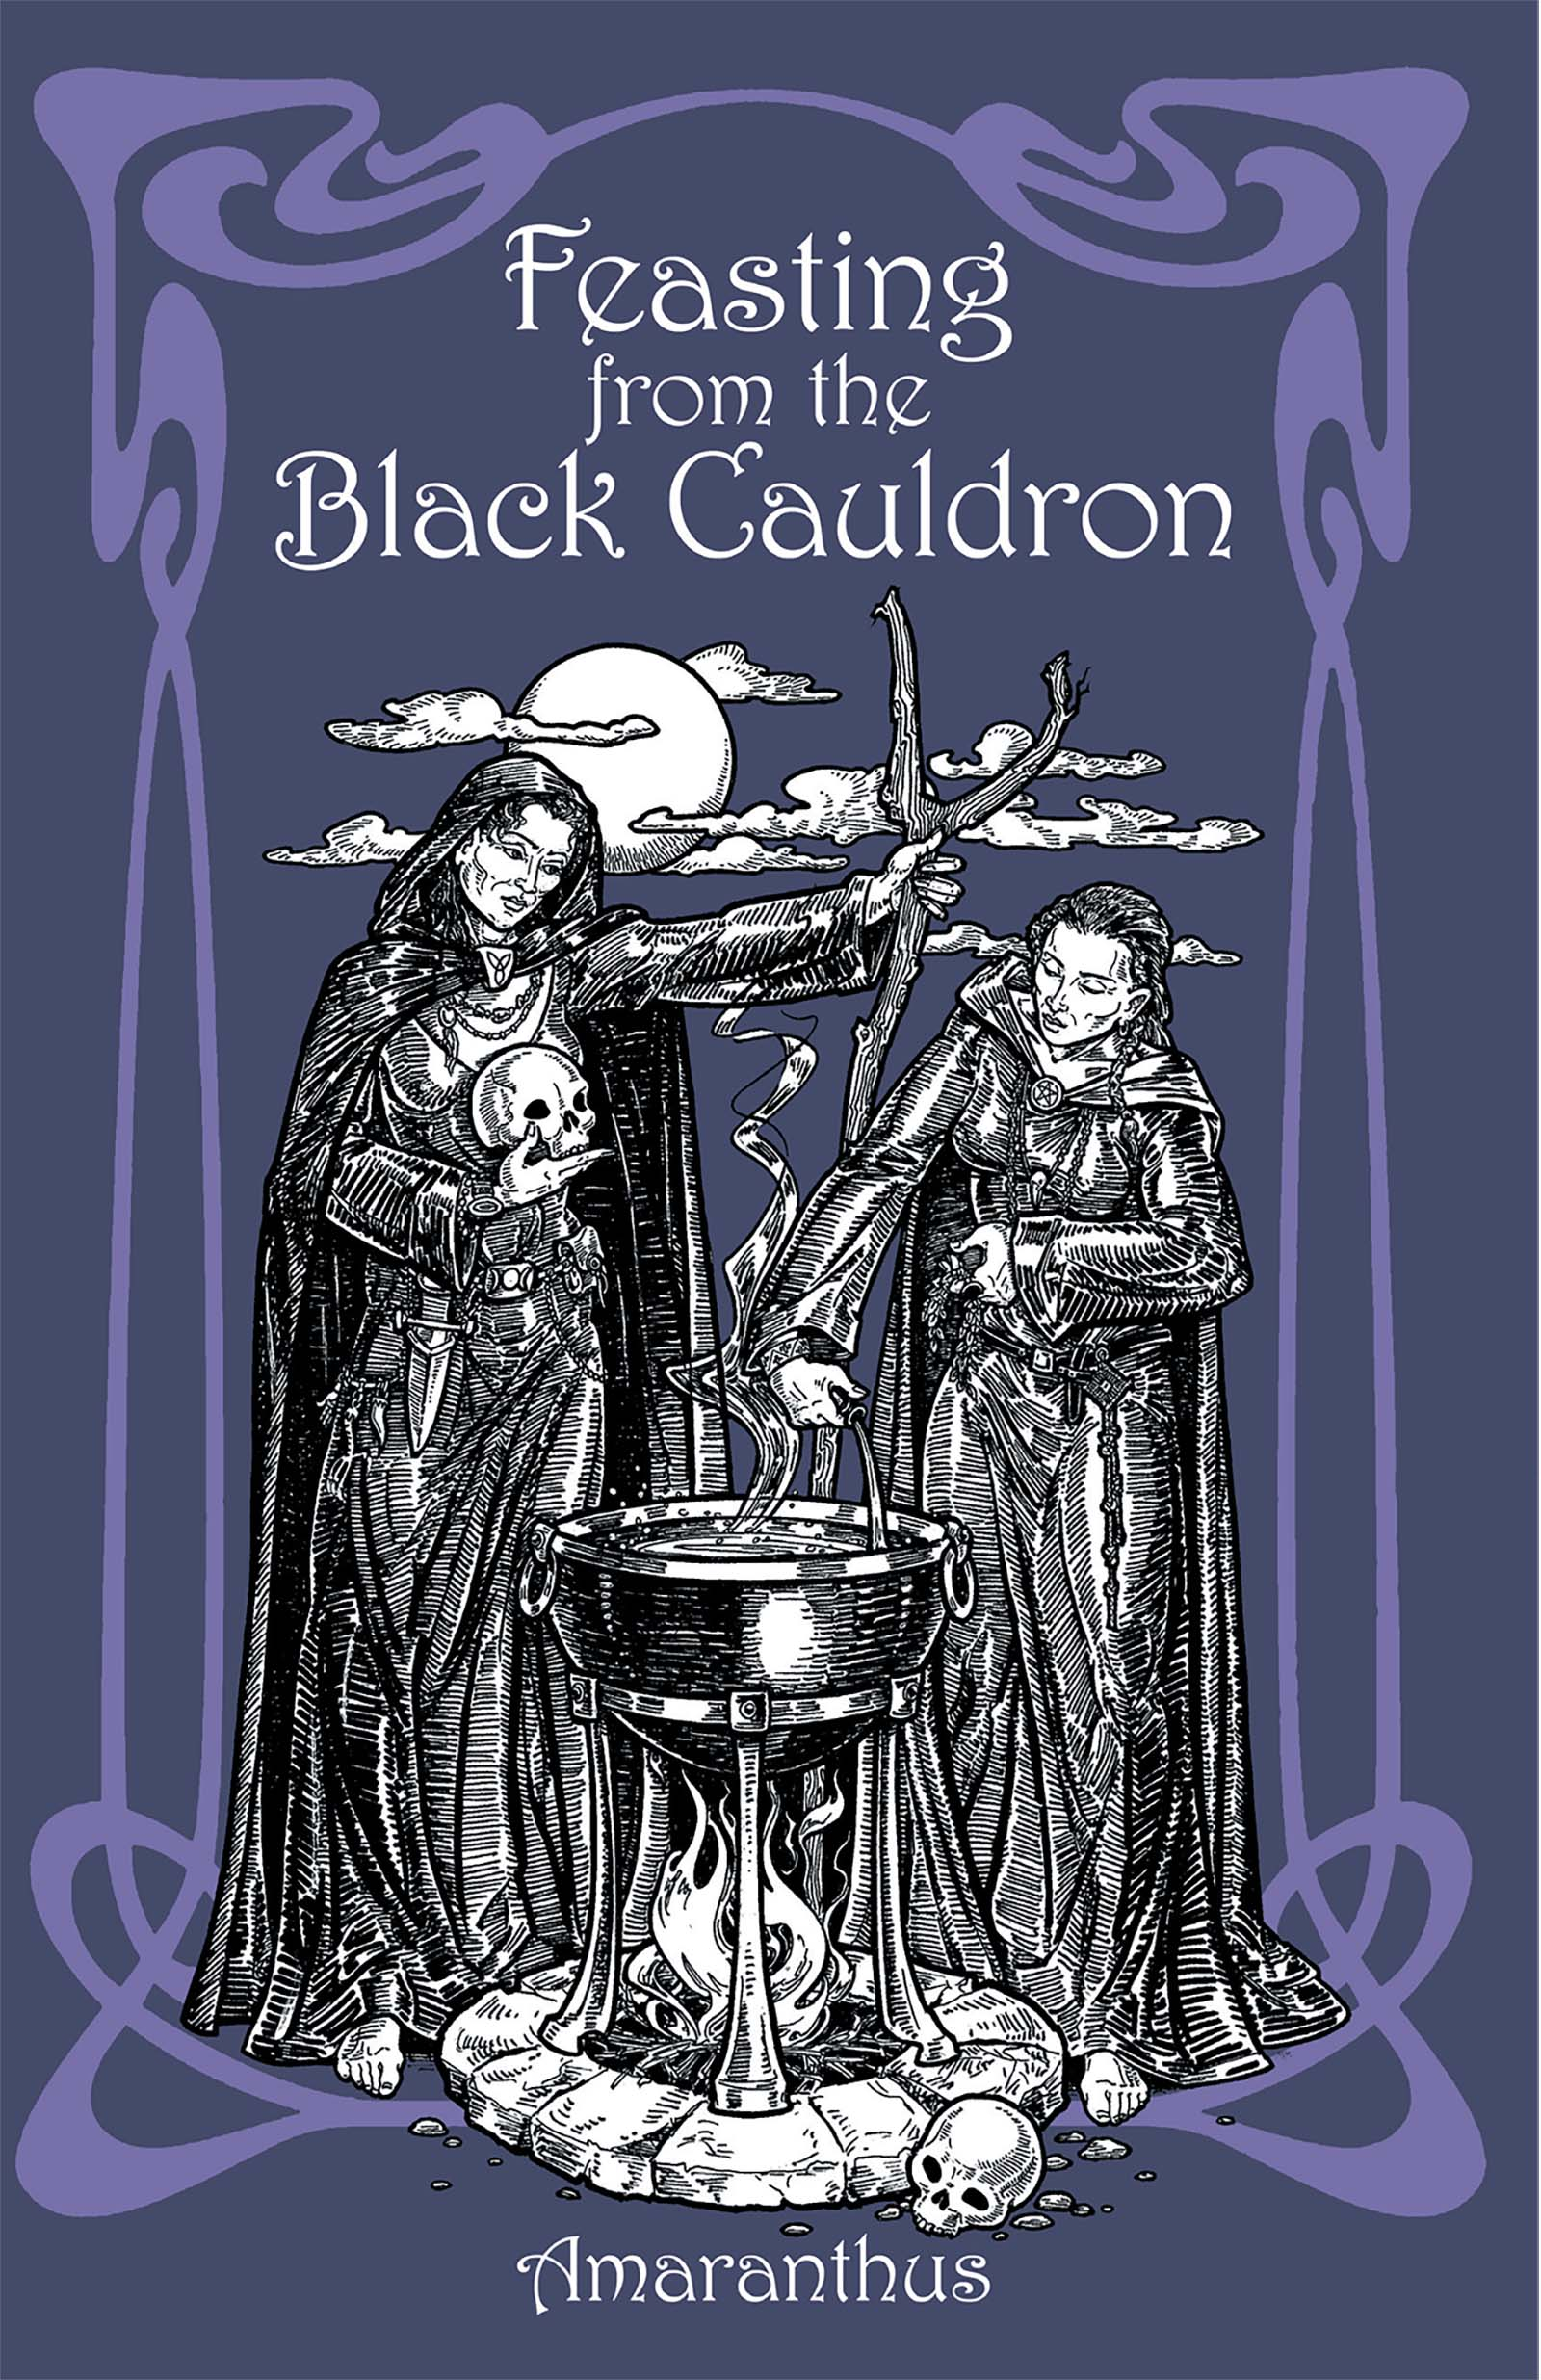 Feasting from the Black Cauldron, an Ebook by Amaranthus